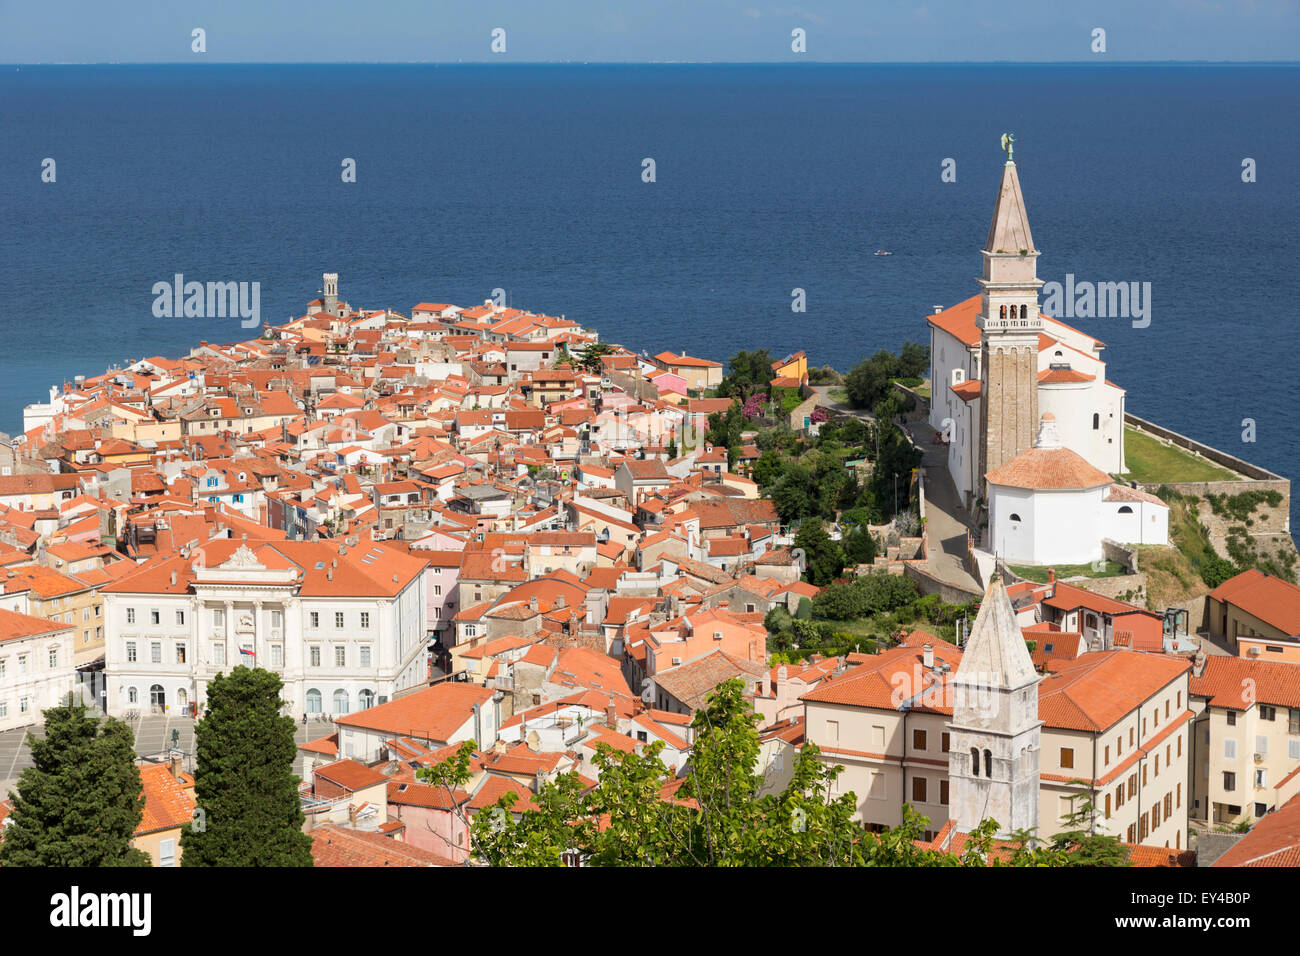 Piran, Primorska, Slovenia. Overall view of the town and of St. George's cathedral from the Town Walls. - Stock Image